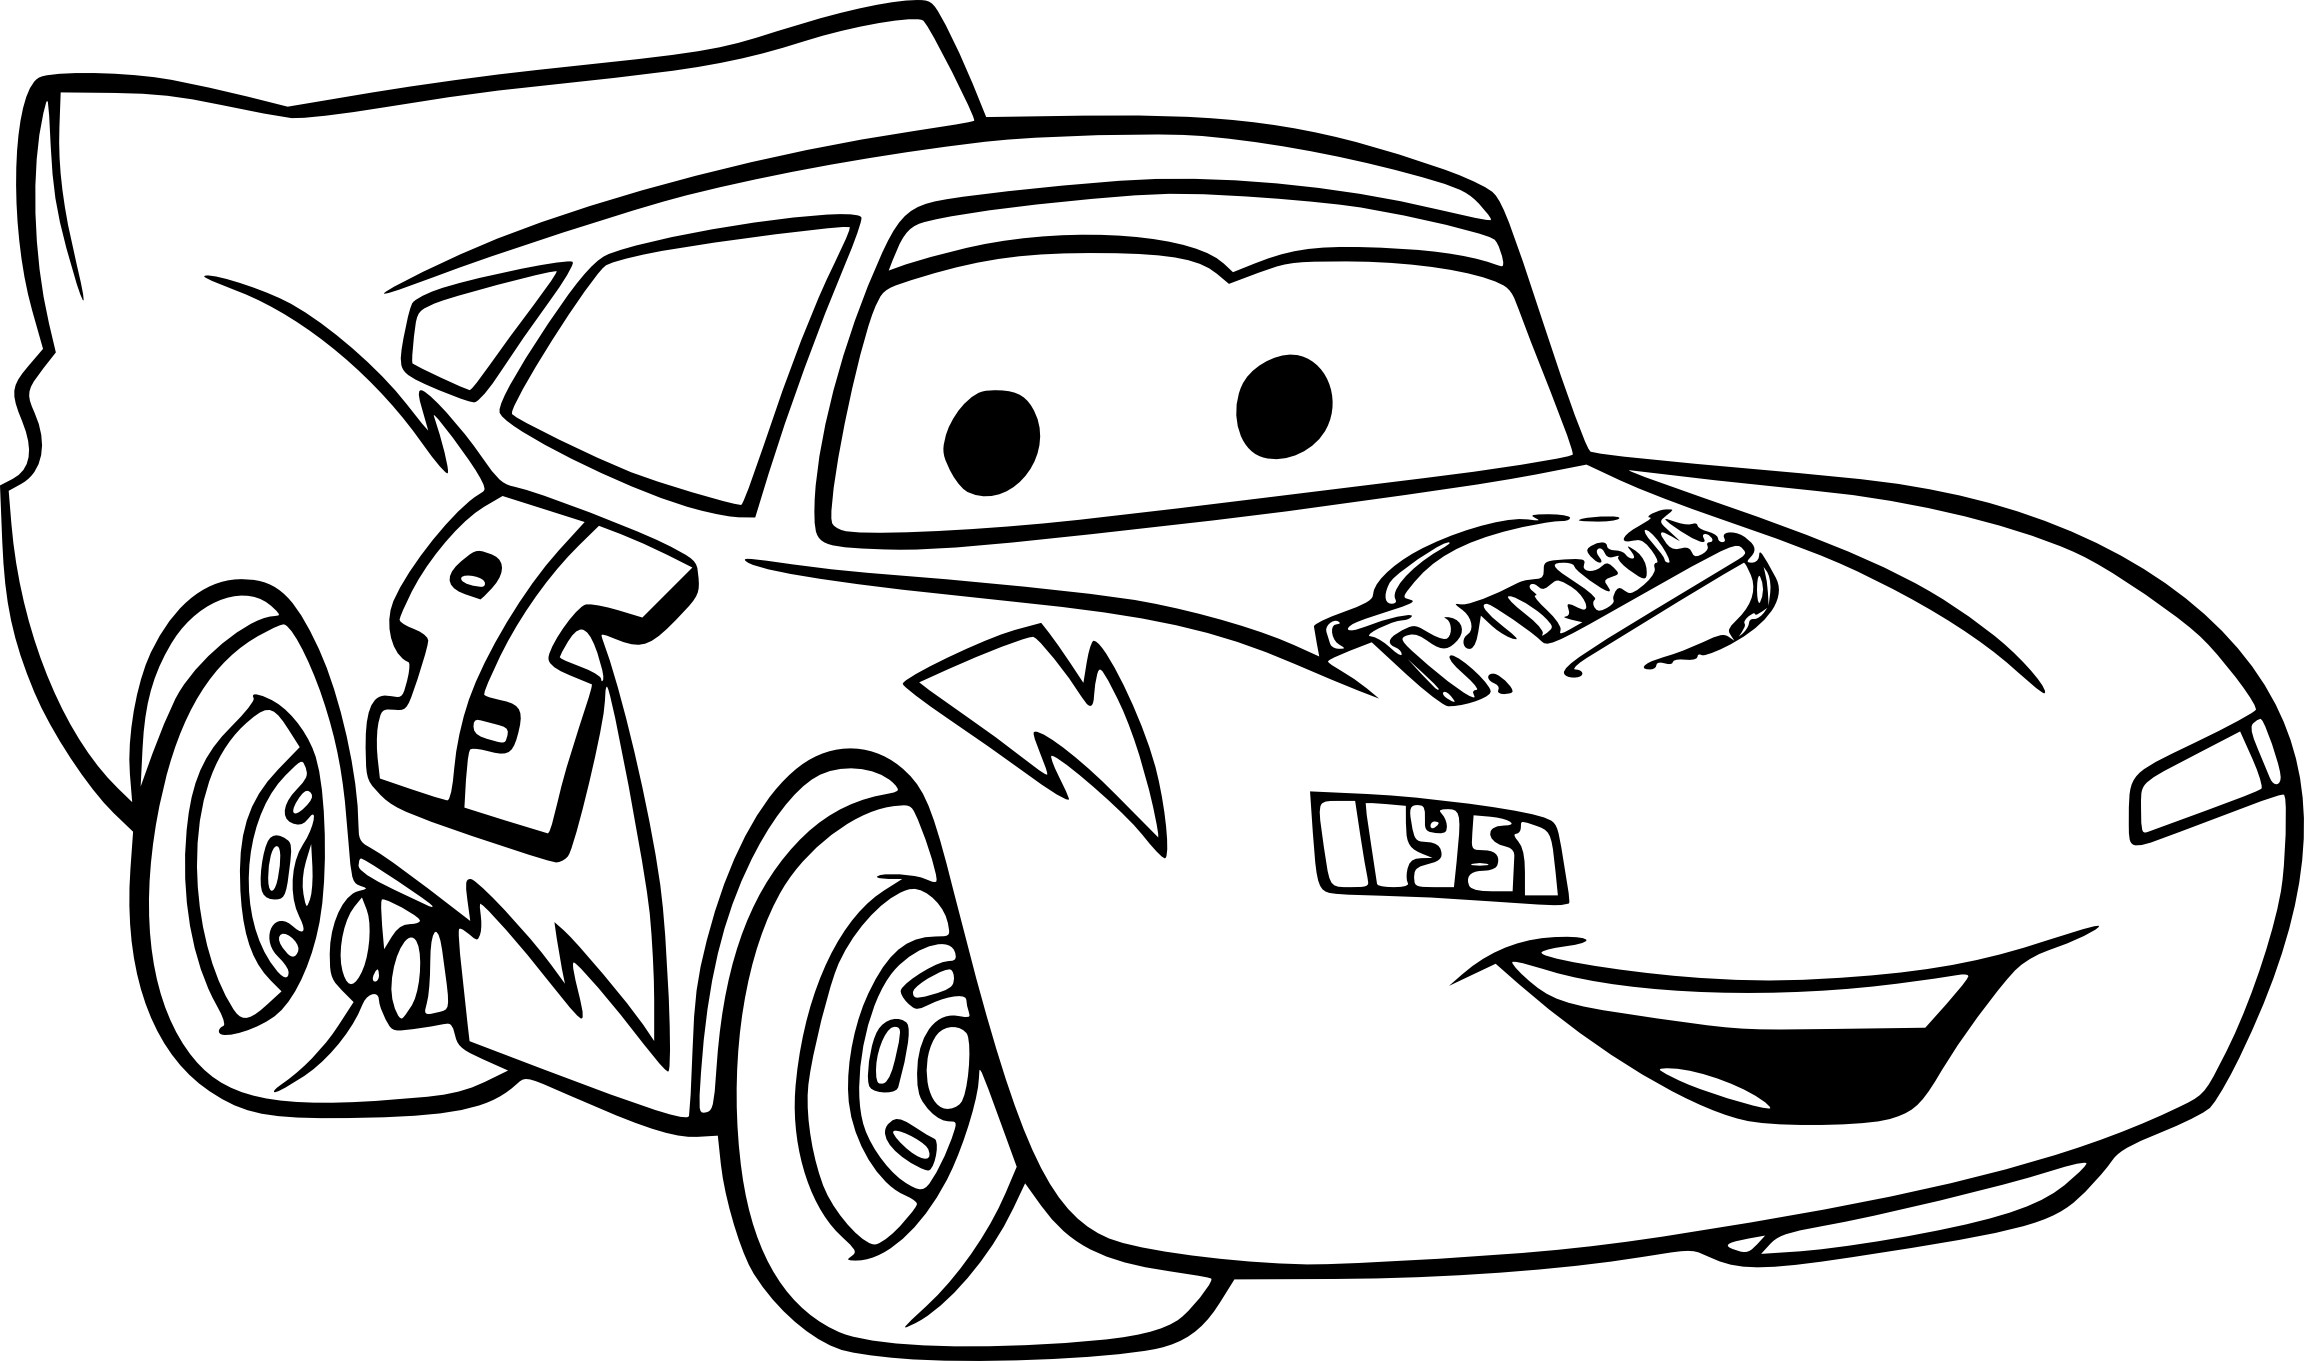 Add And Subtracting Coloring Pages Coloring Pages